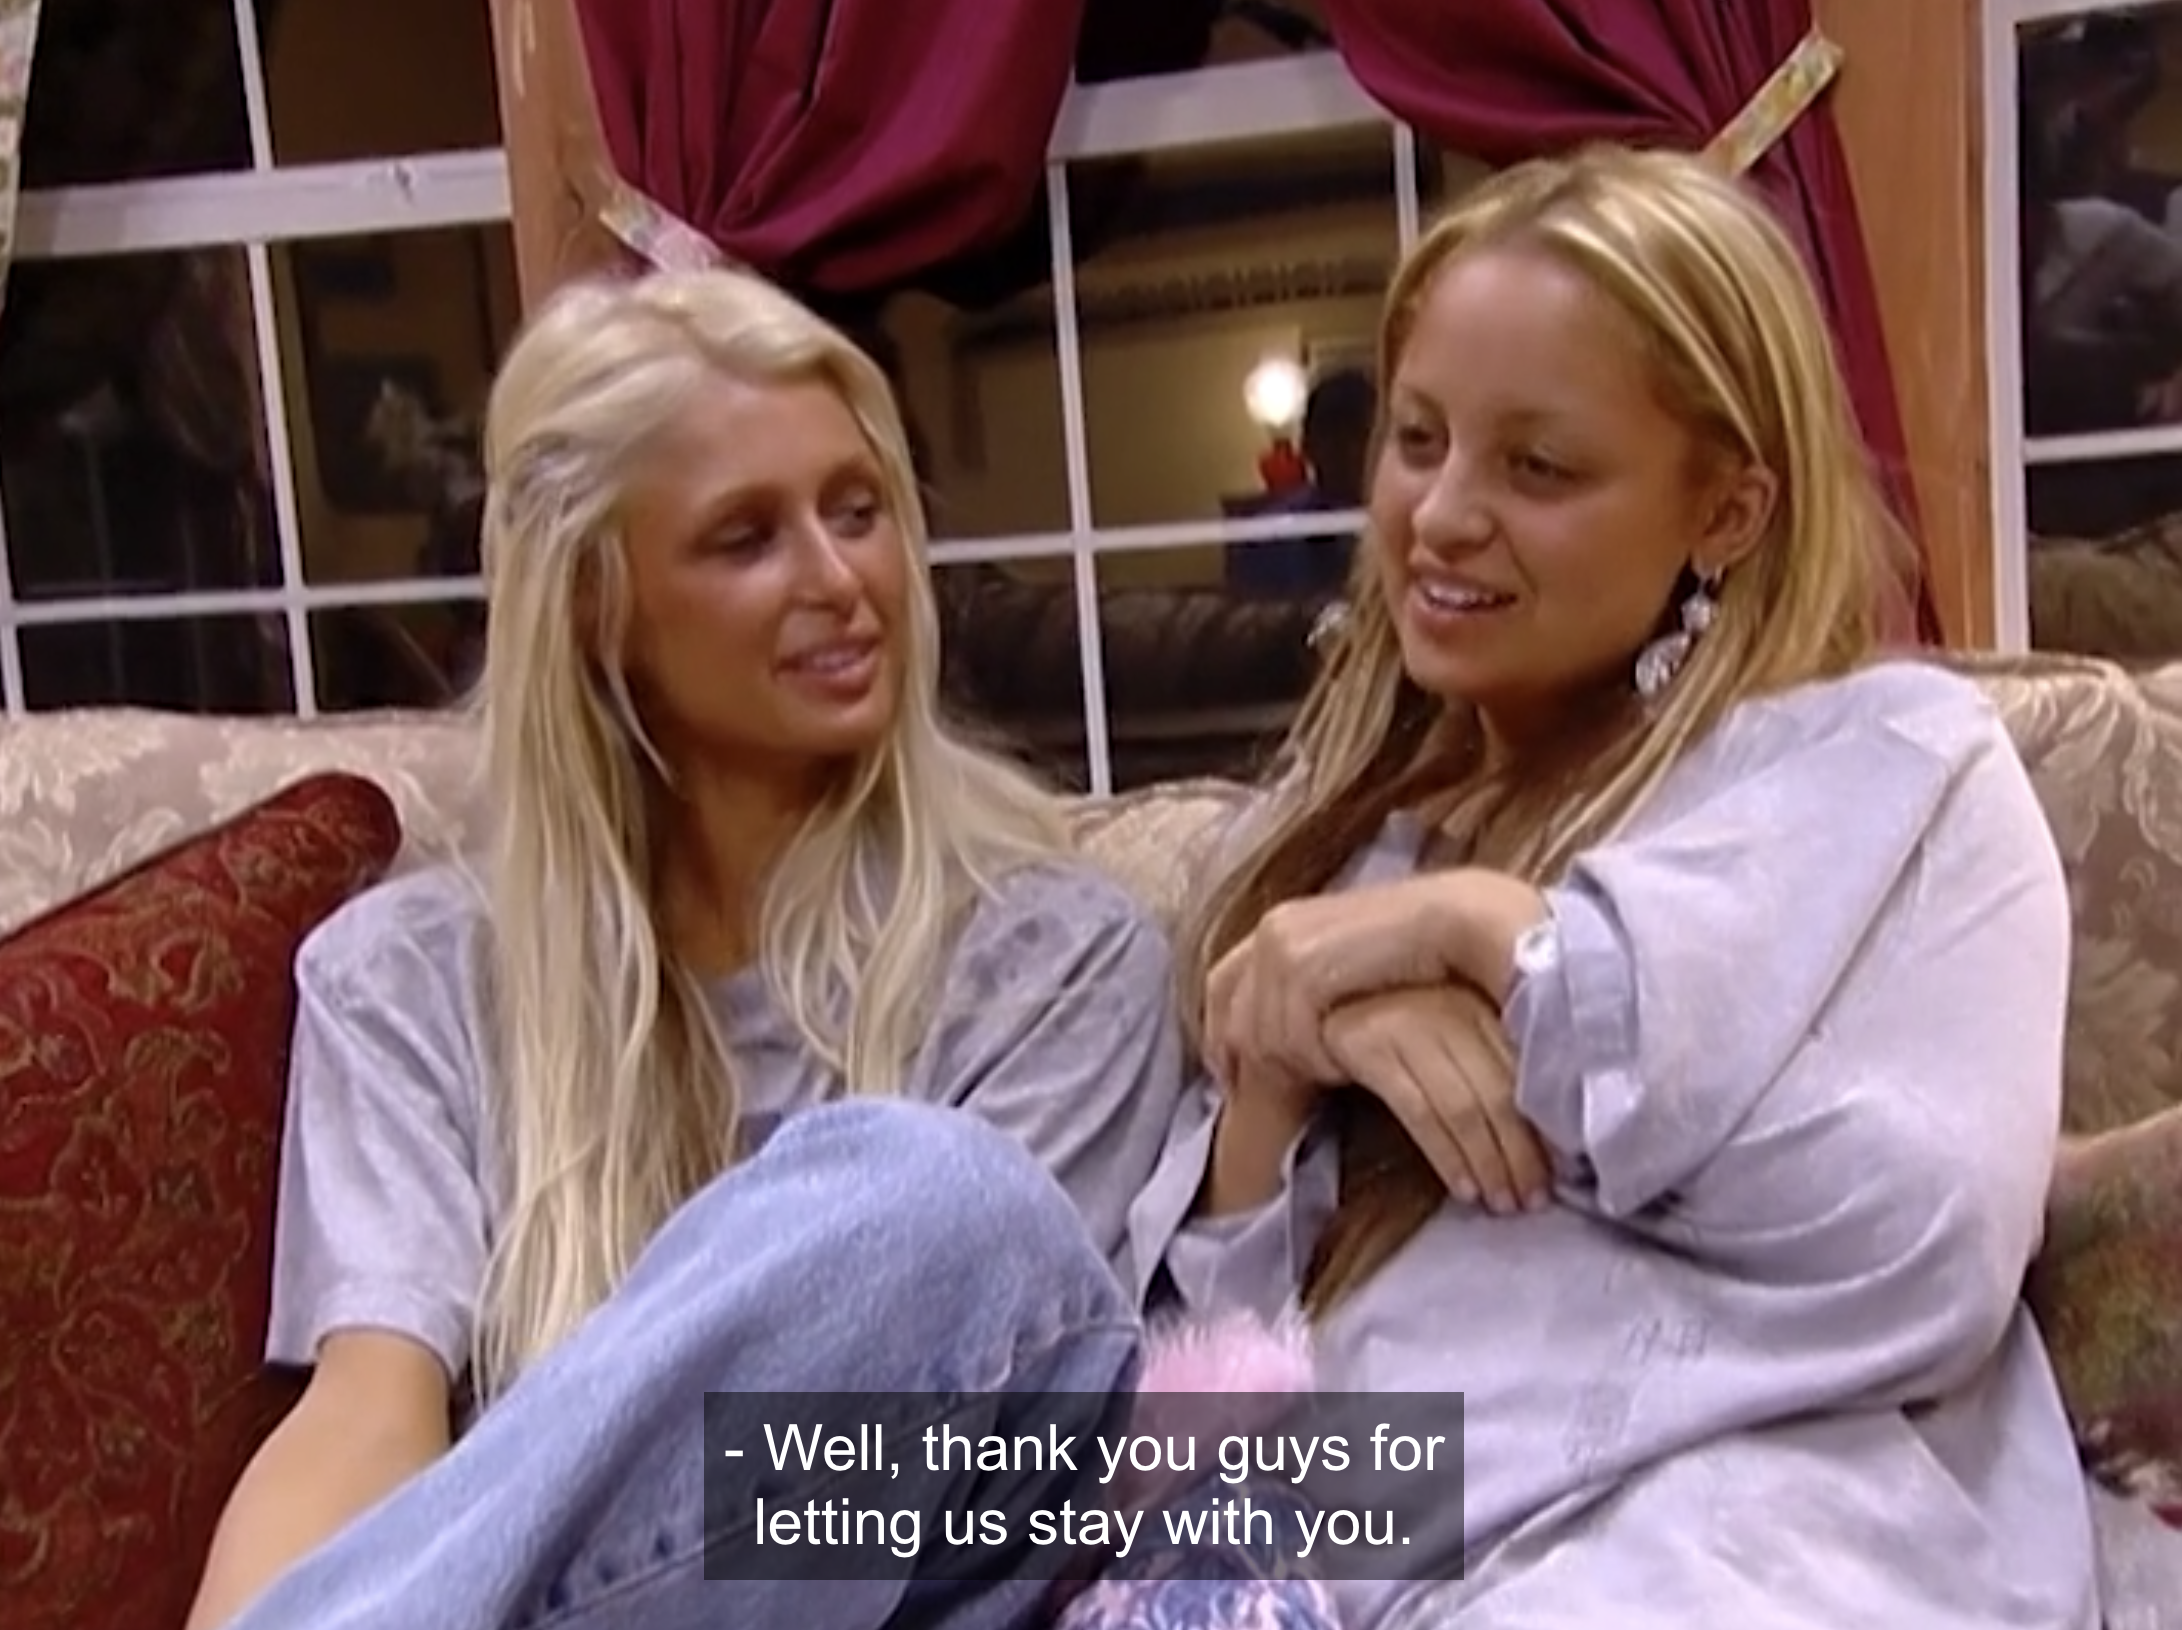 Paris and Nicole thanking their host family for taking them in.